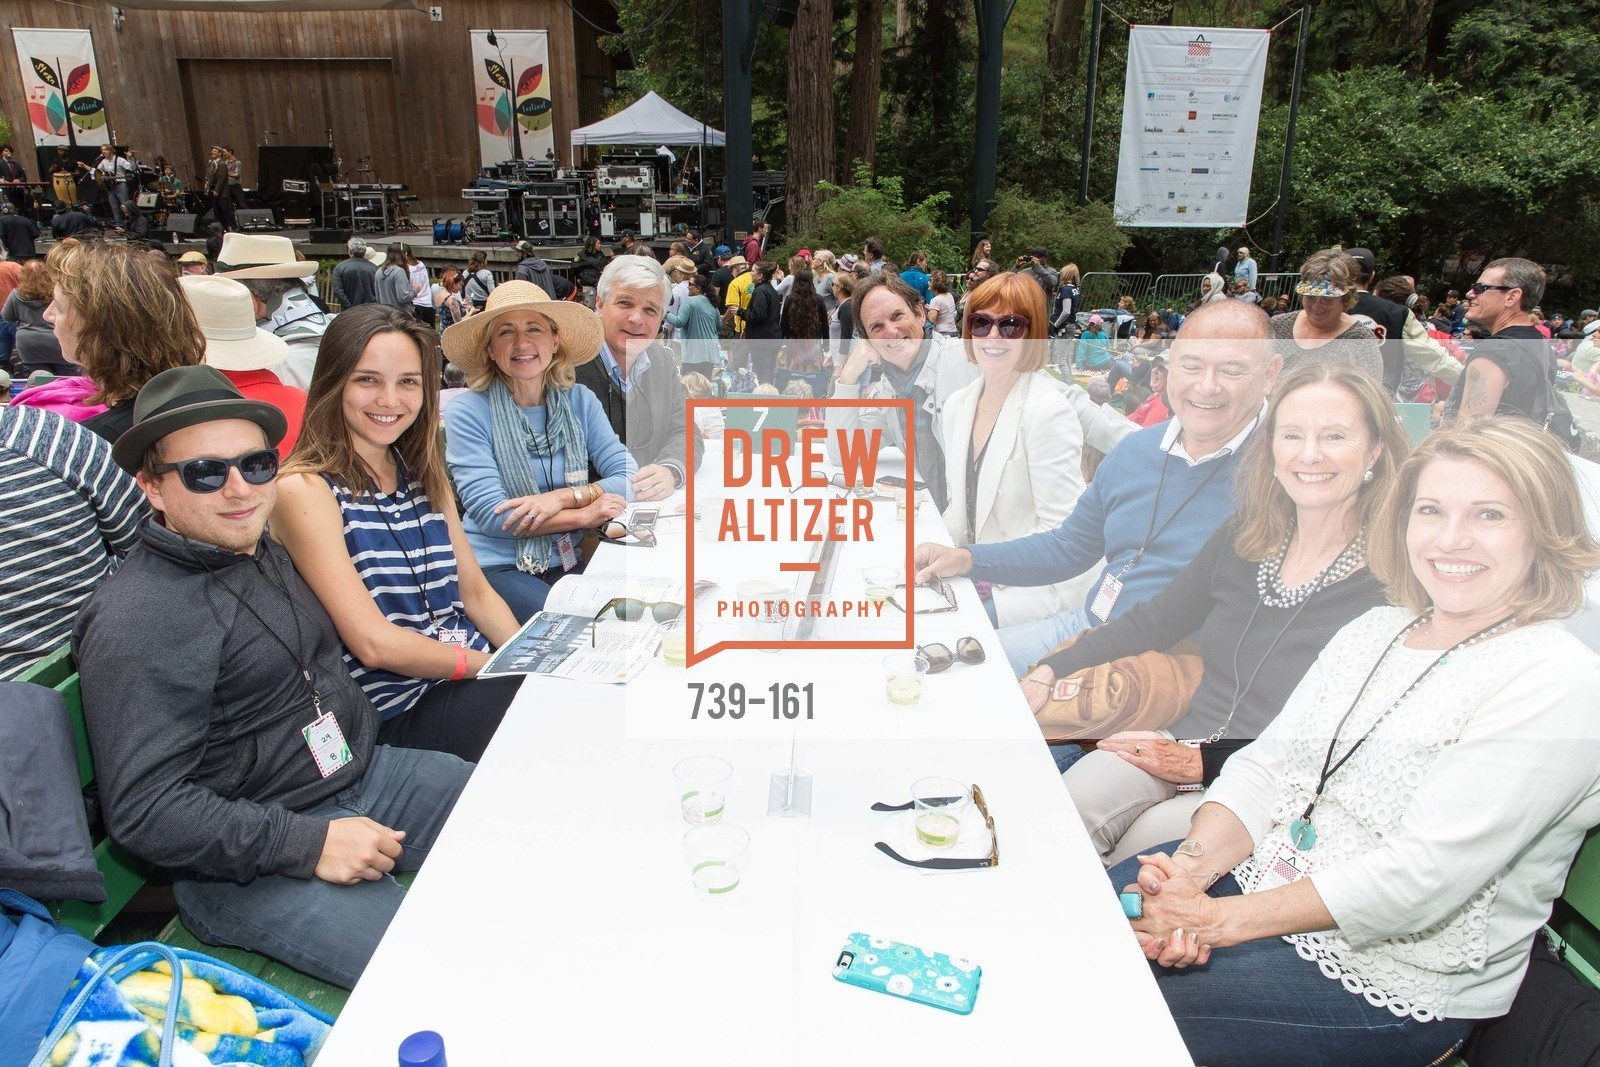 Top pics, THE BIG PICNIC Kicking off  2015 Stern Grove Season, June 14th, 2015, Photo,Drew Altizer, Drew Altizer Photography, full-service event agency, private events, San Francisco photographer, photographer California